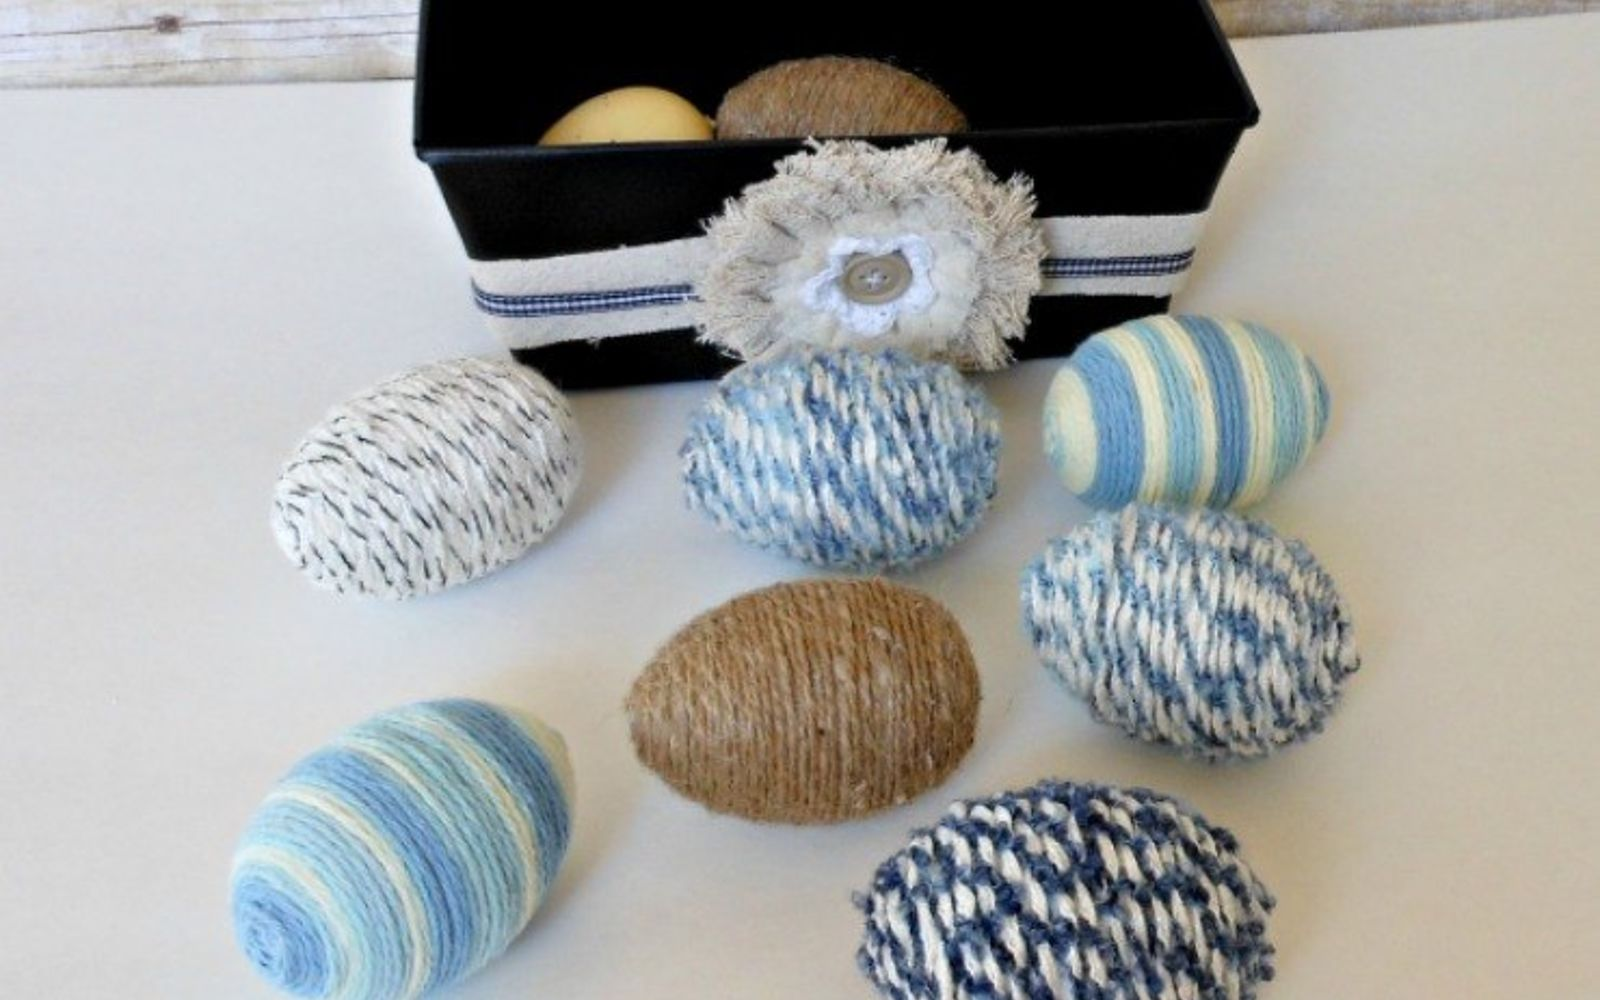 s 25 quick easter egg ideas that are just too stinkin cute, crafts, easter decorations, Craft a mix of textures with colorful yarn